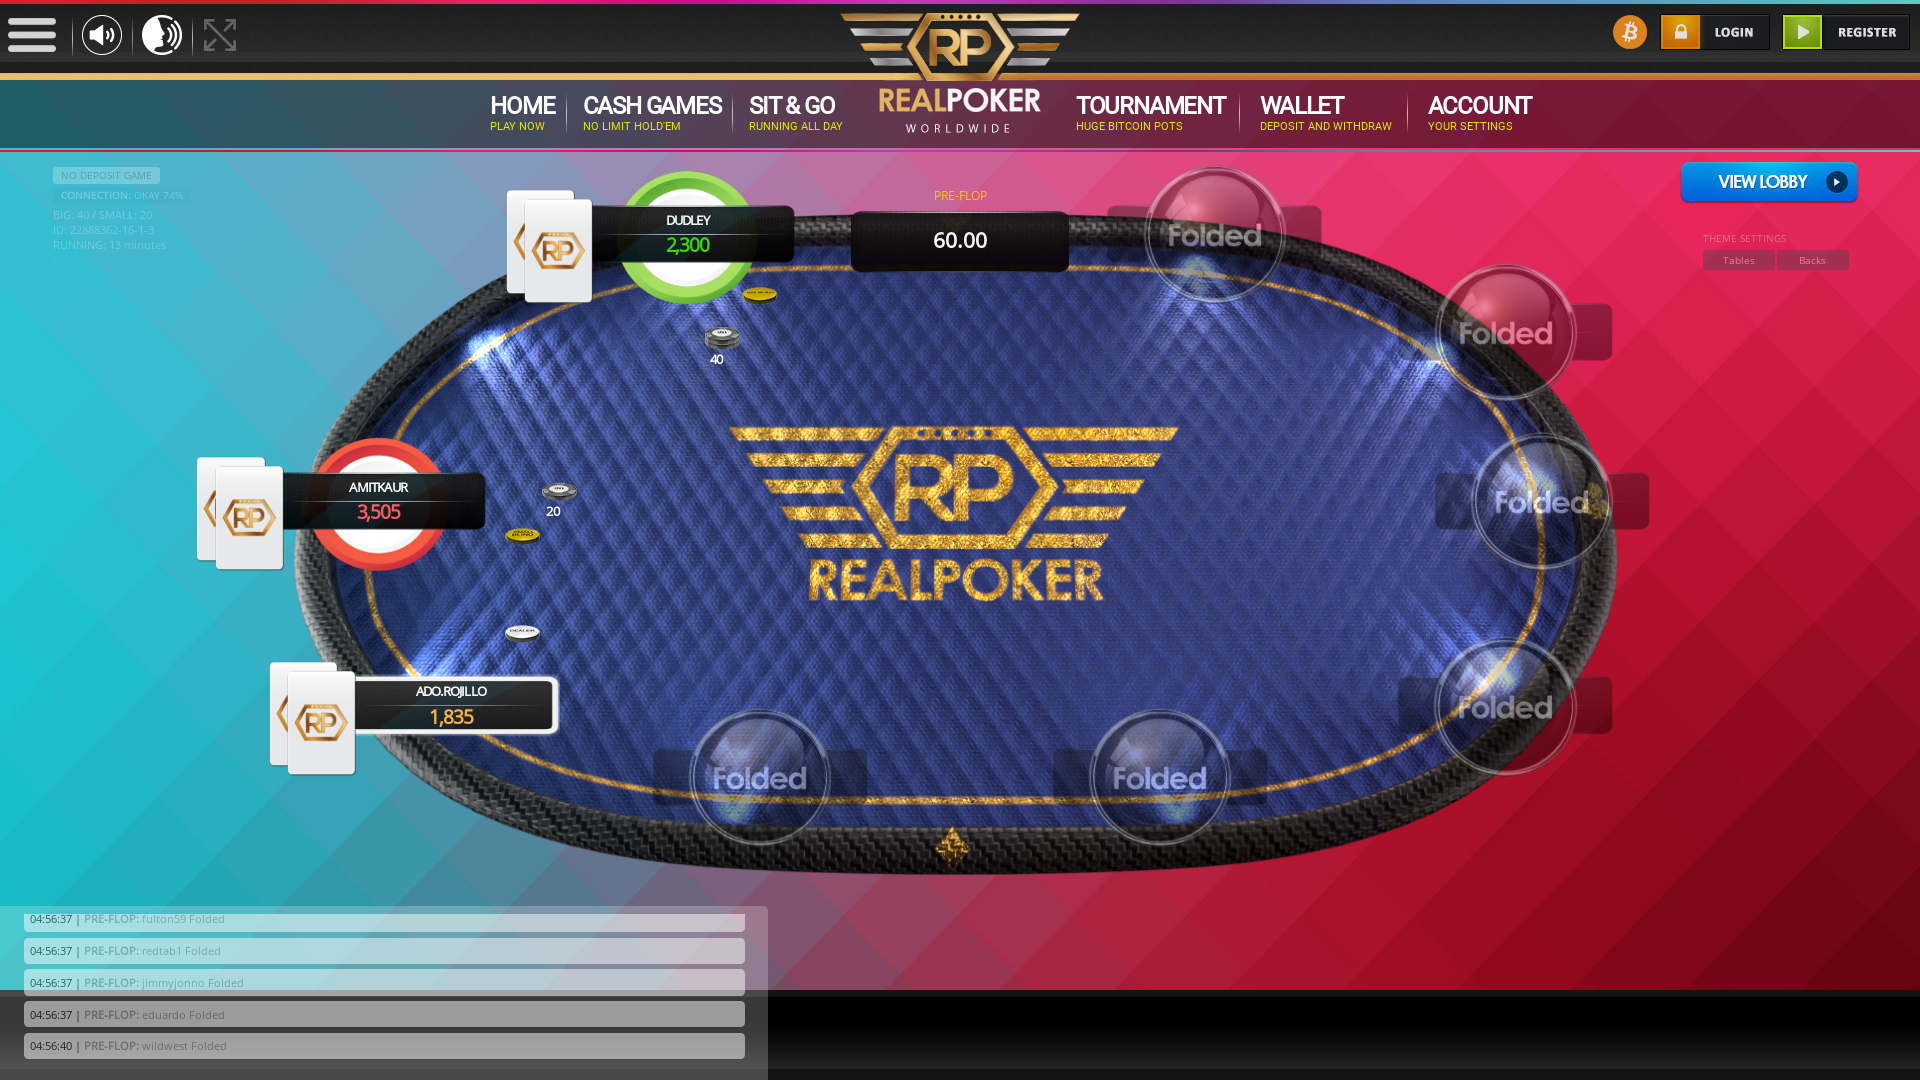 Belgium Bitcoin Poker on the 29th August